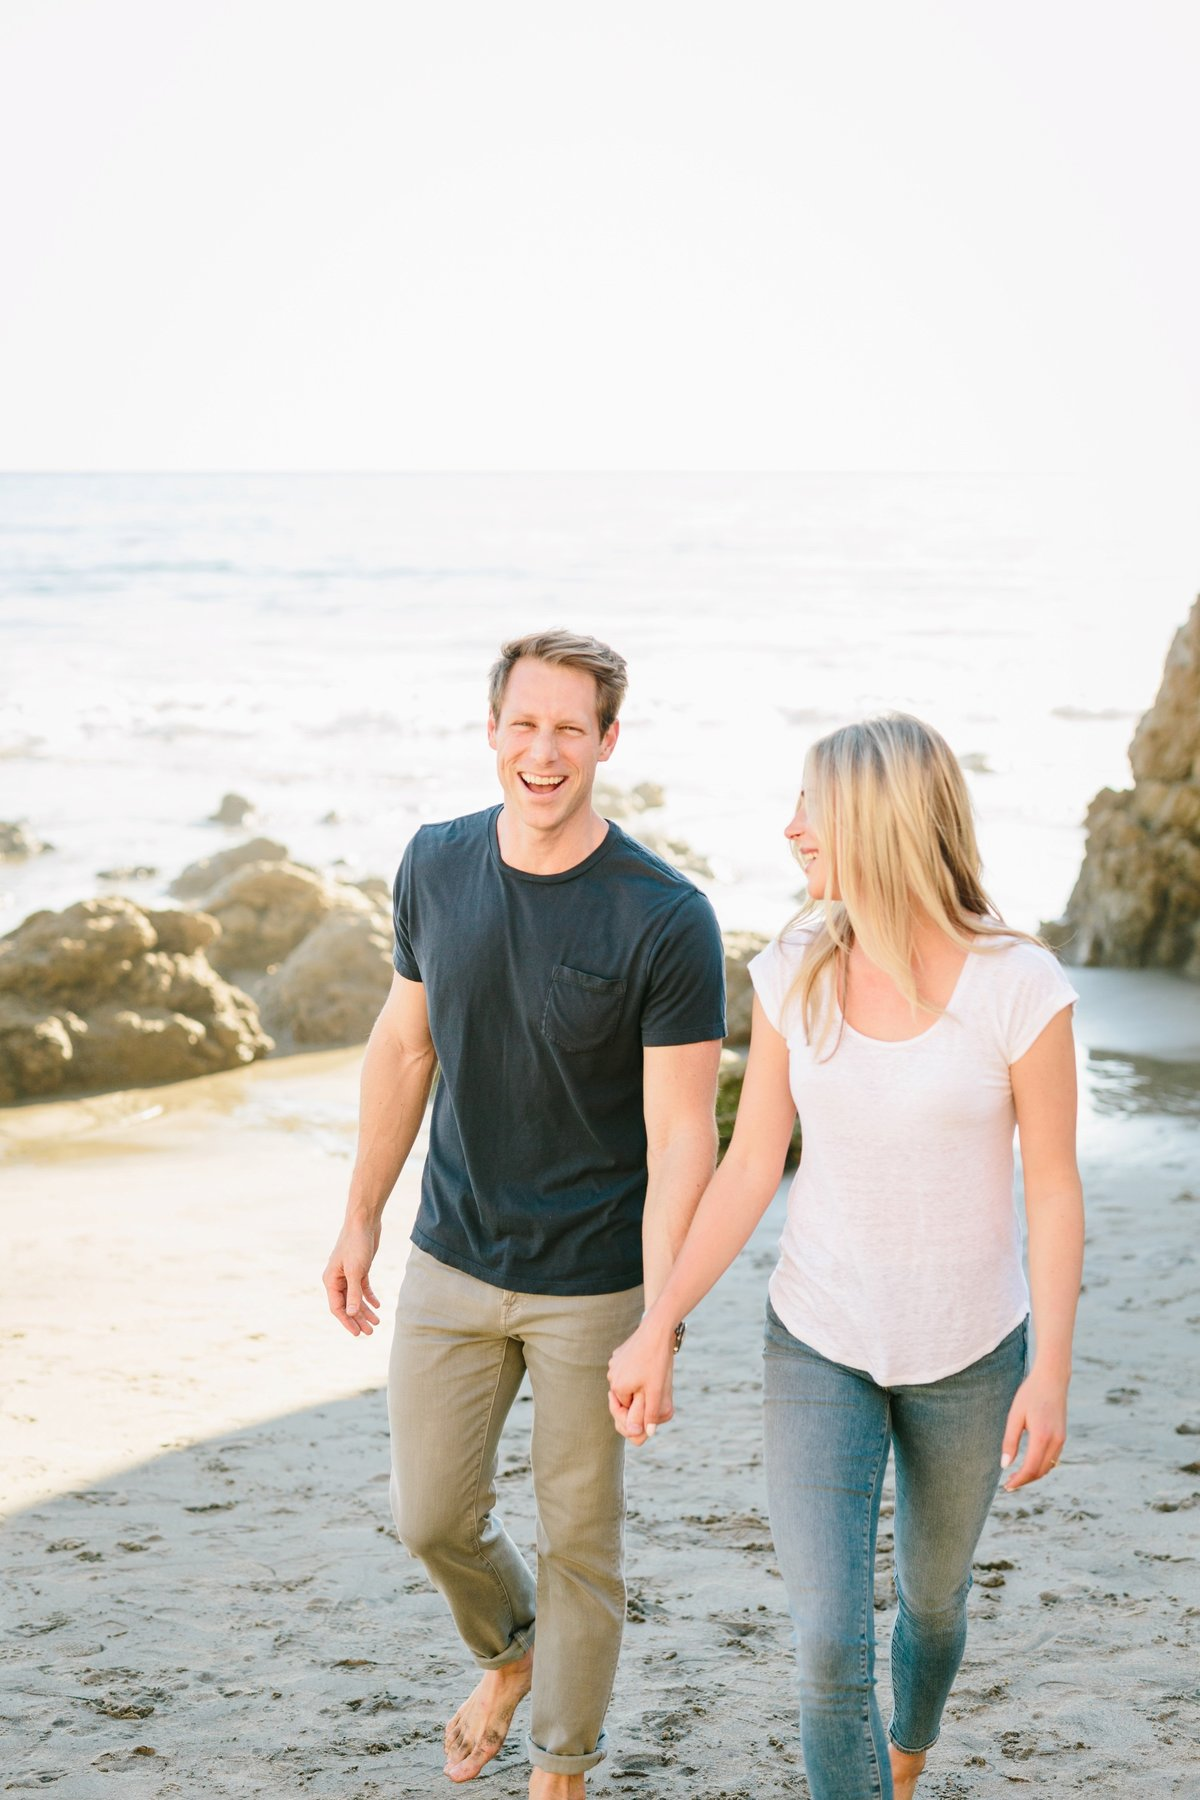 Best California Engagement Photographer-Jodee Debes Photography-46